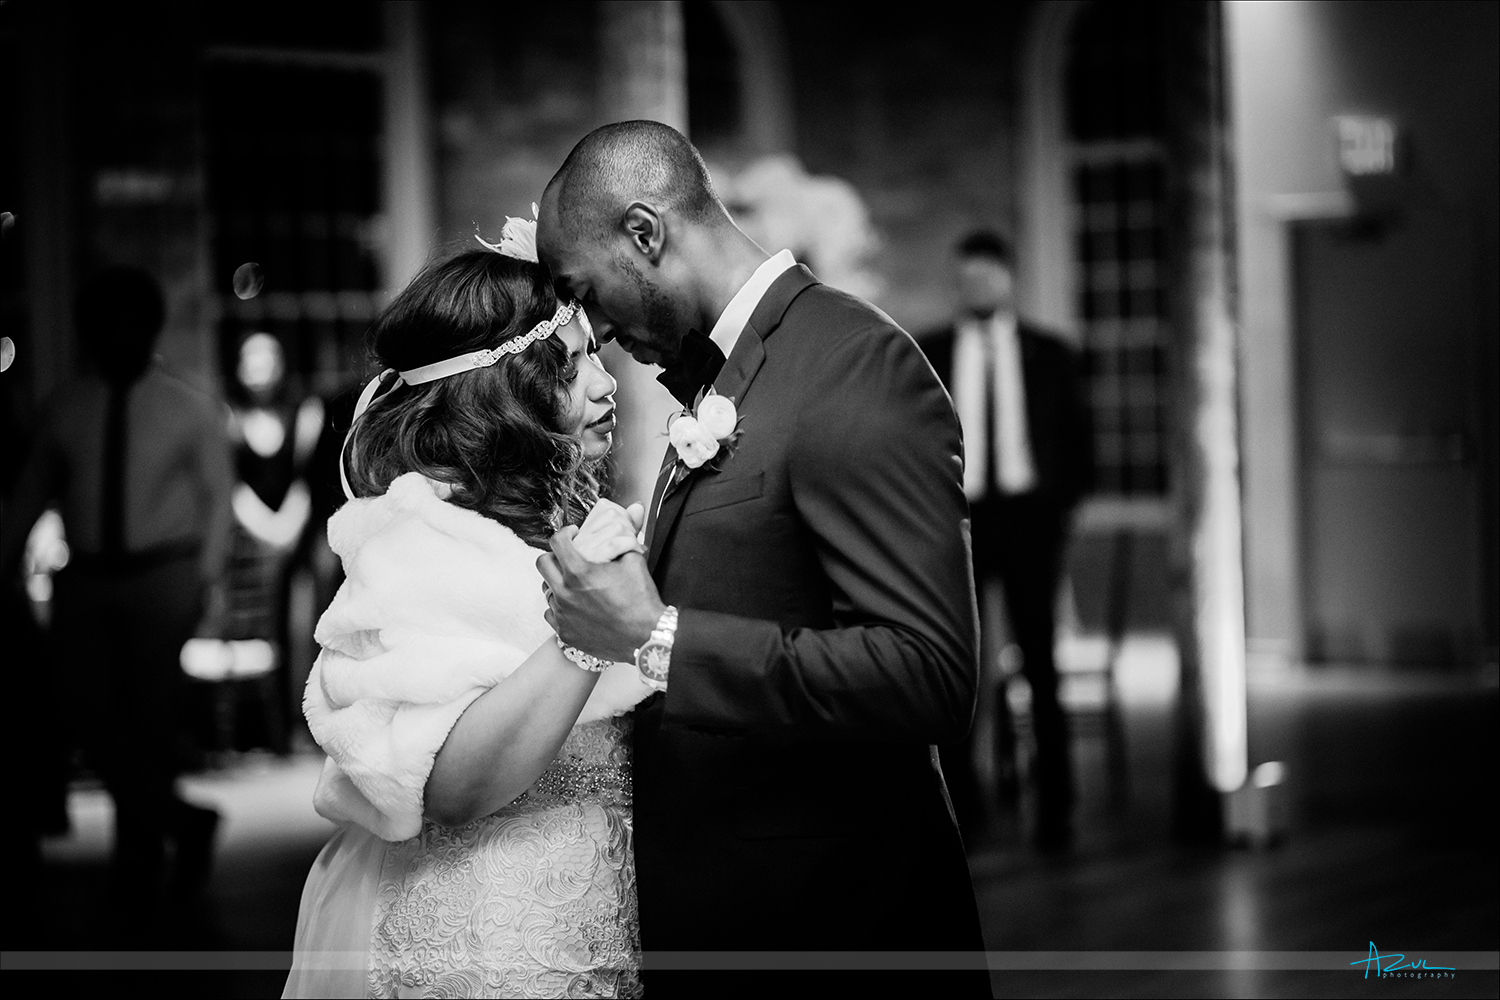 Beautiful moment between the bride and groom during their first dance at their wedding reception in Durham NC